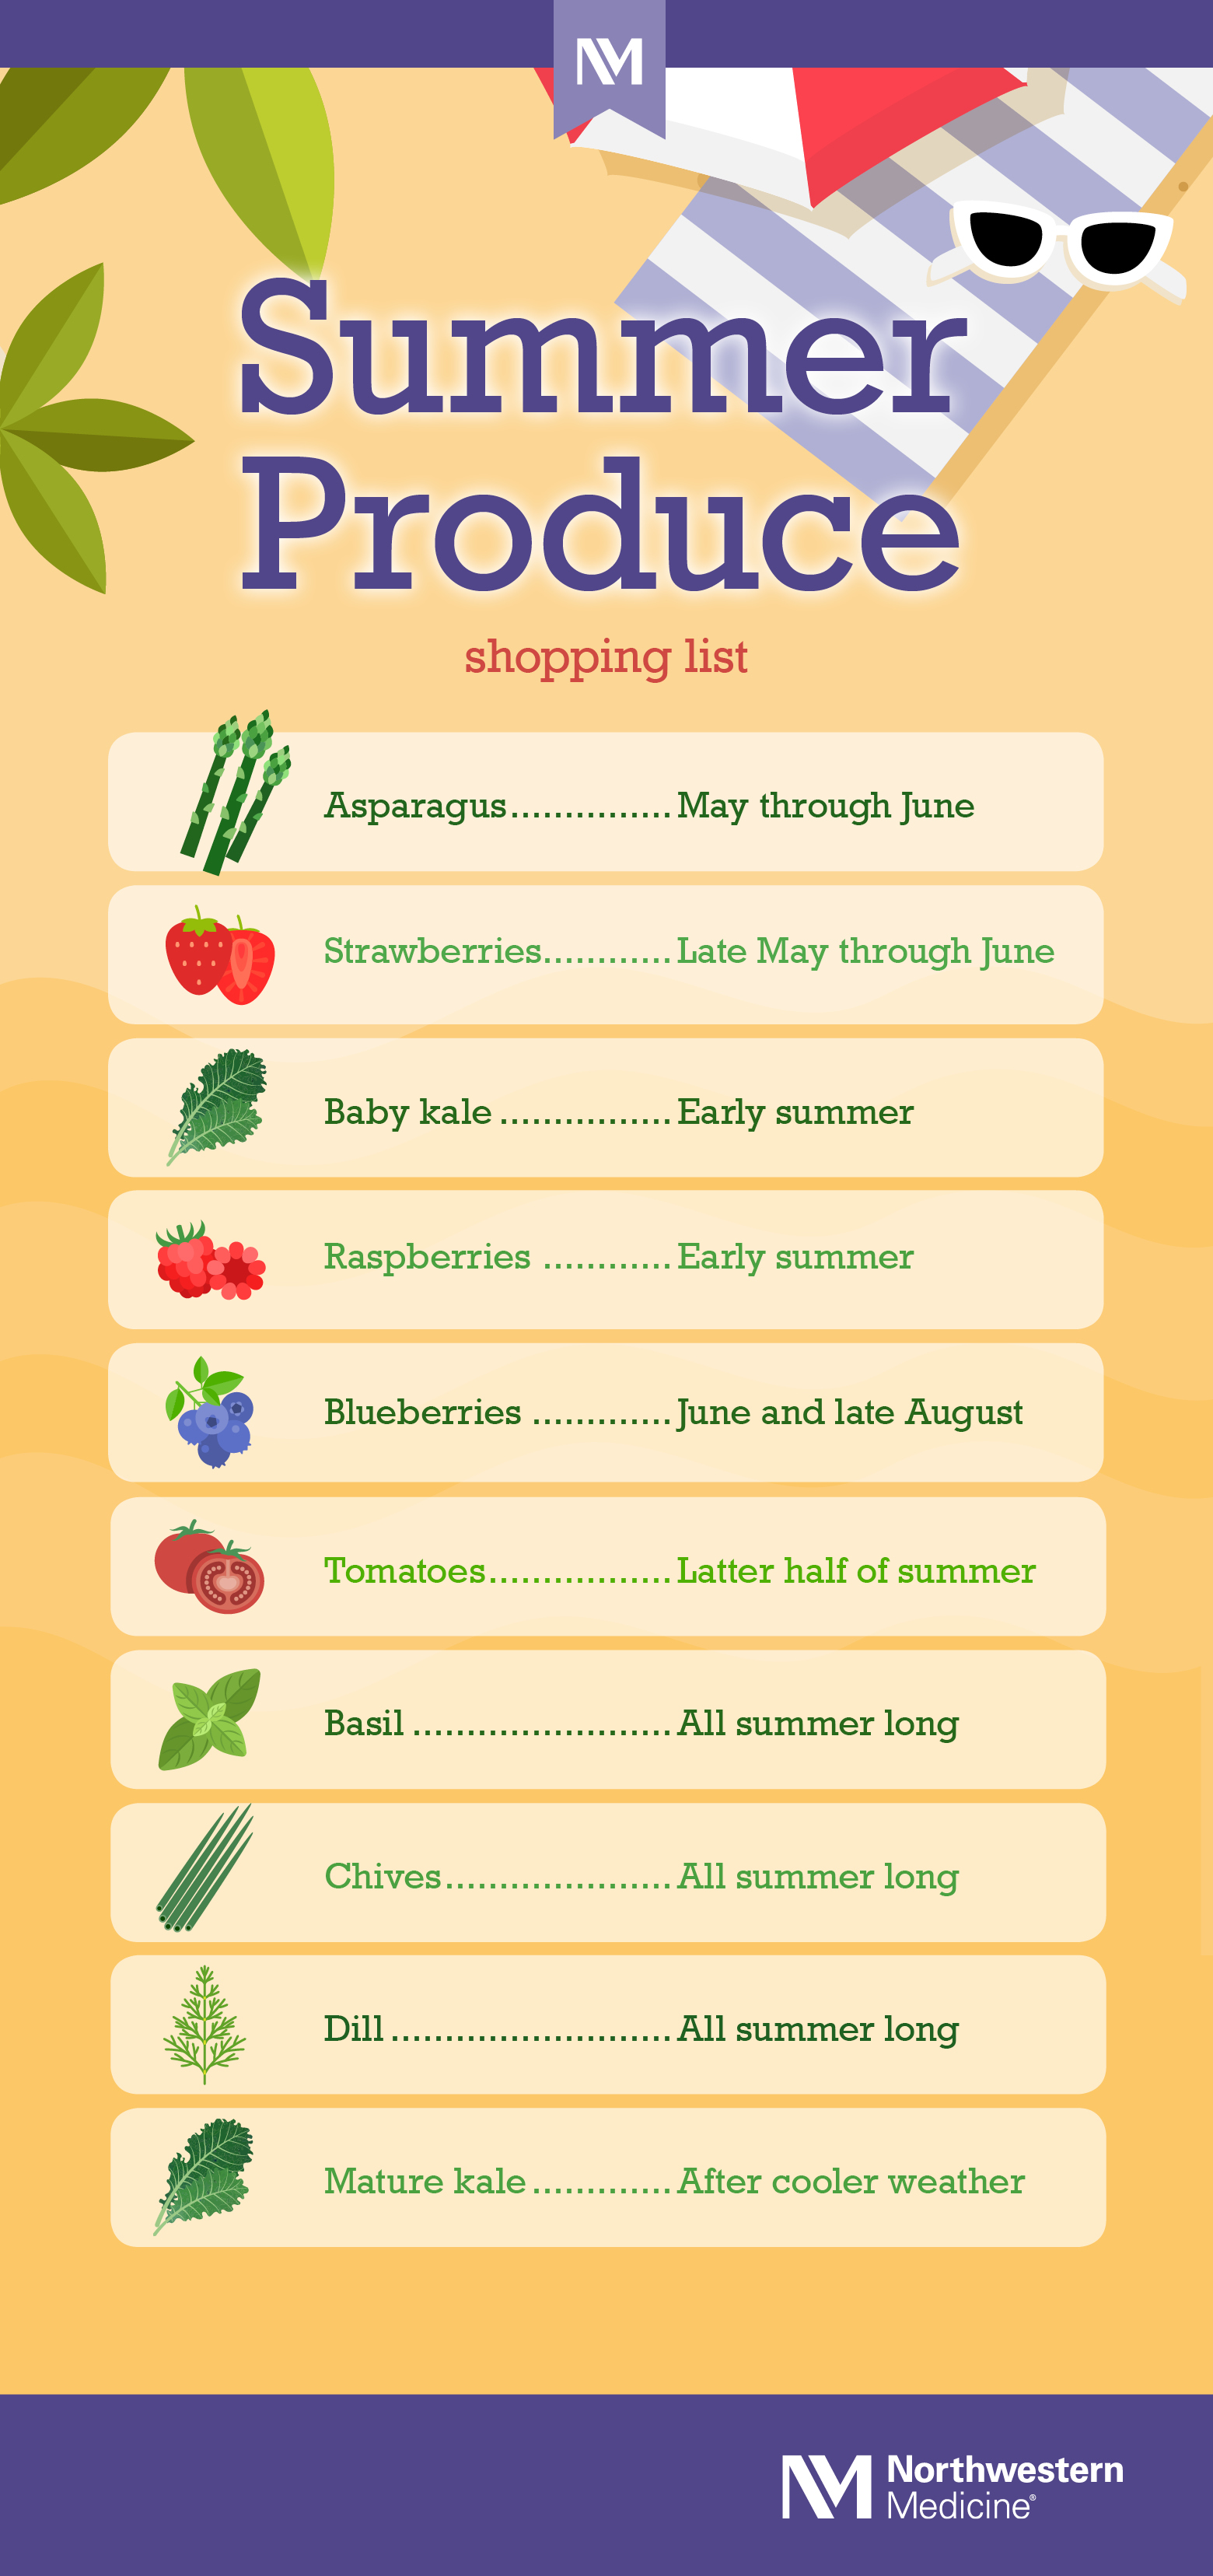 Summer Produce Printable Shopping List